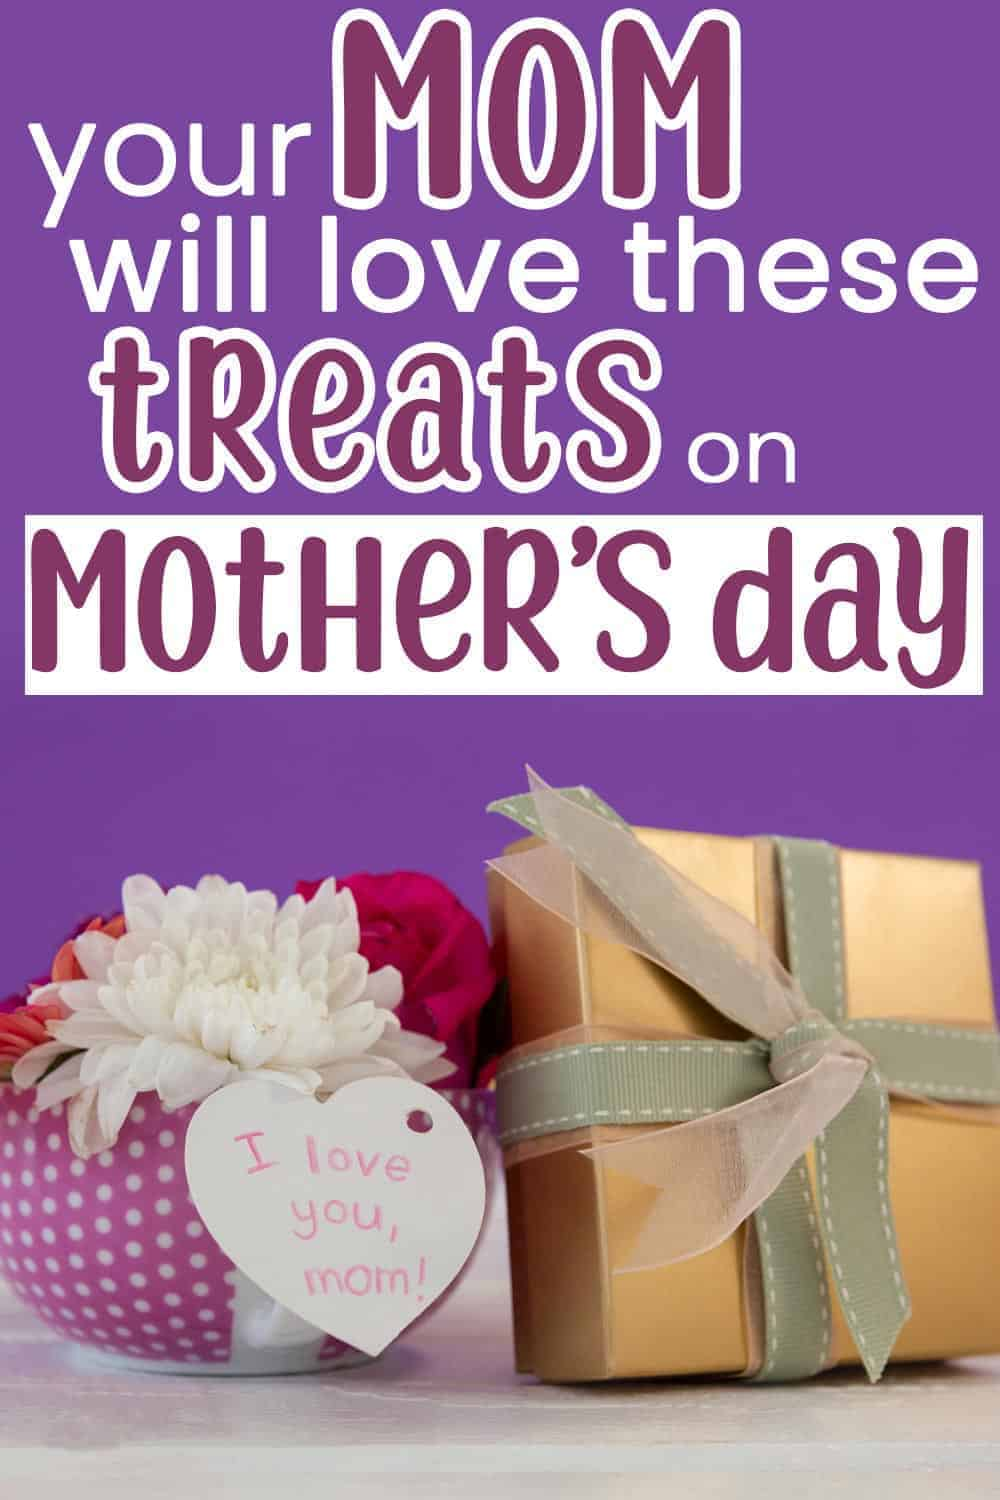 Mothers-day-ideas-your-mom-will-love.jpg